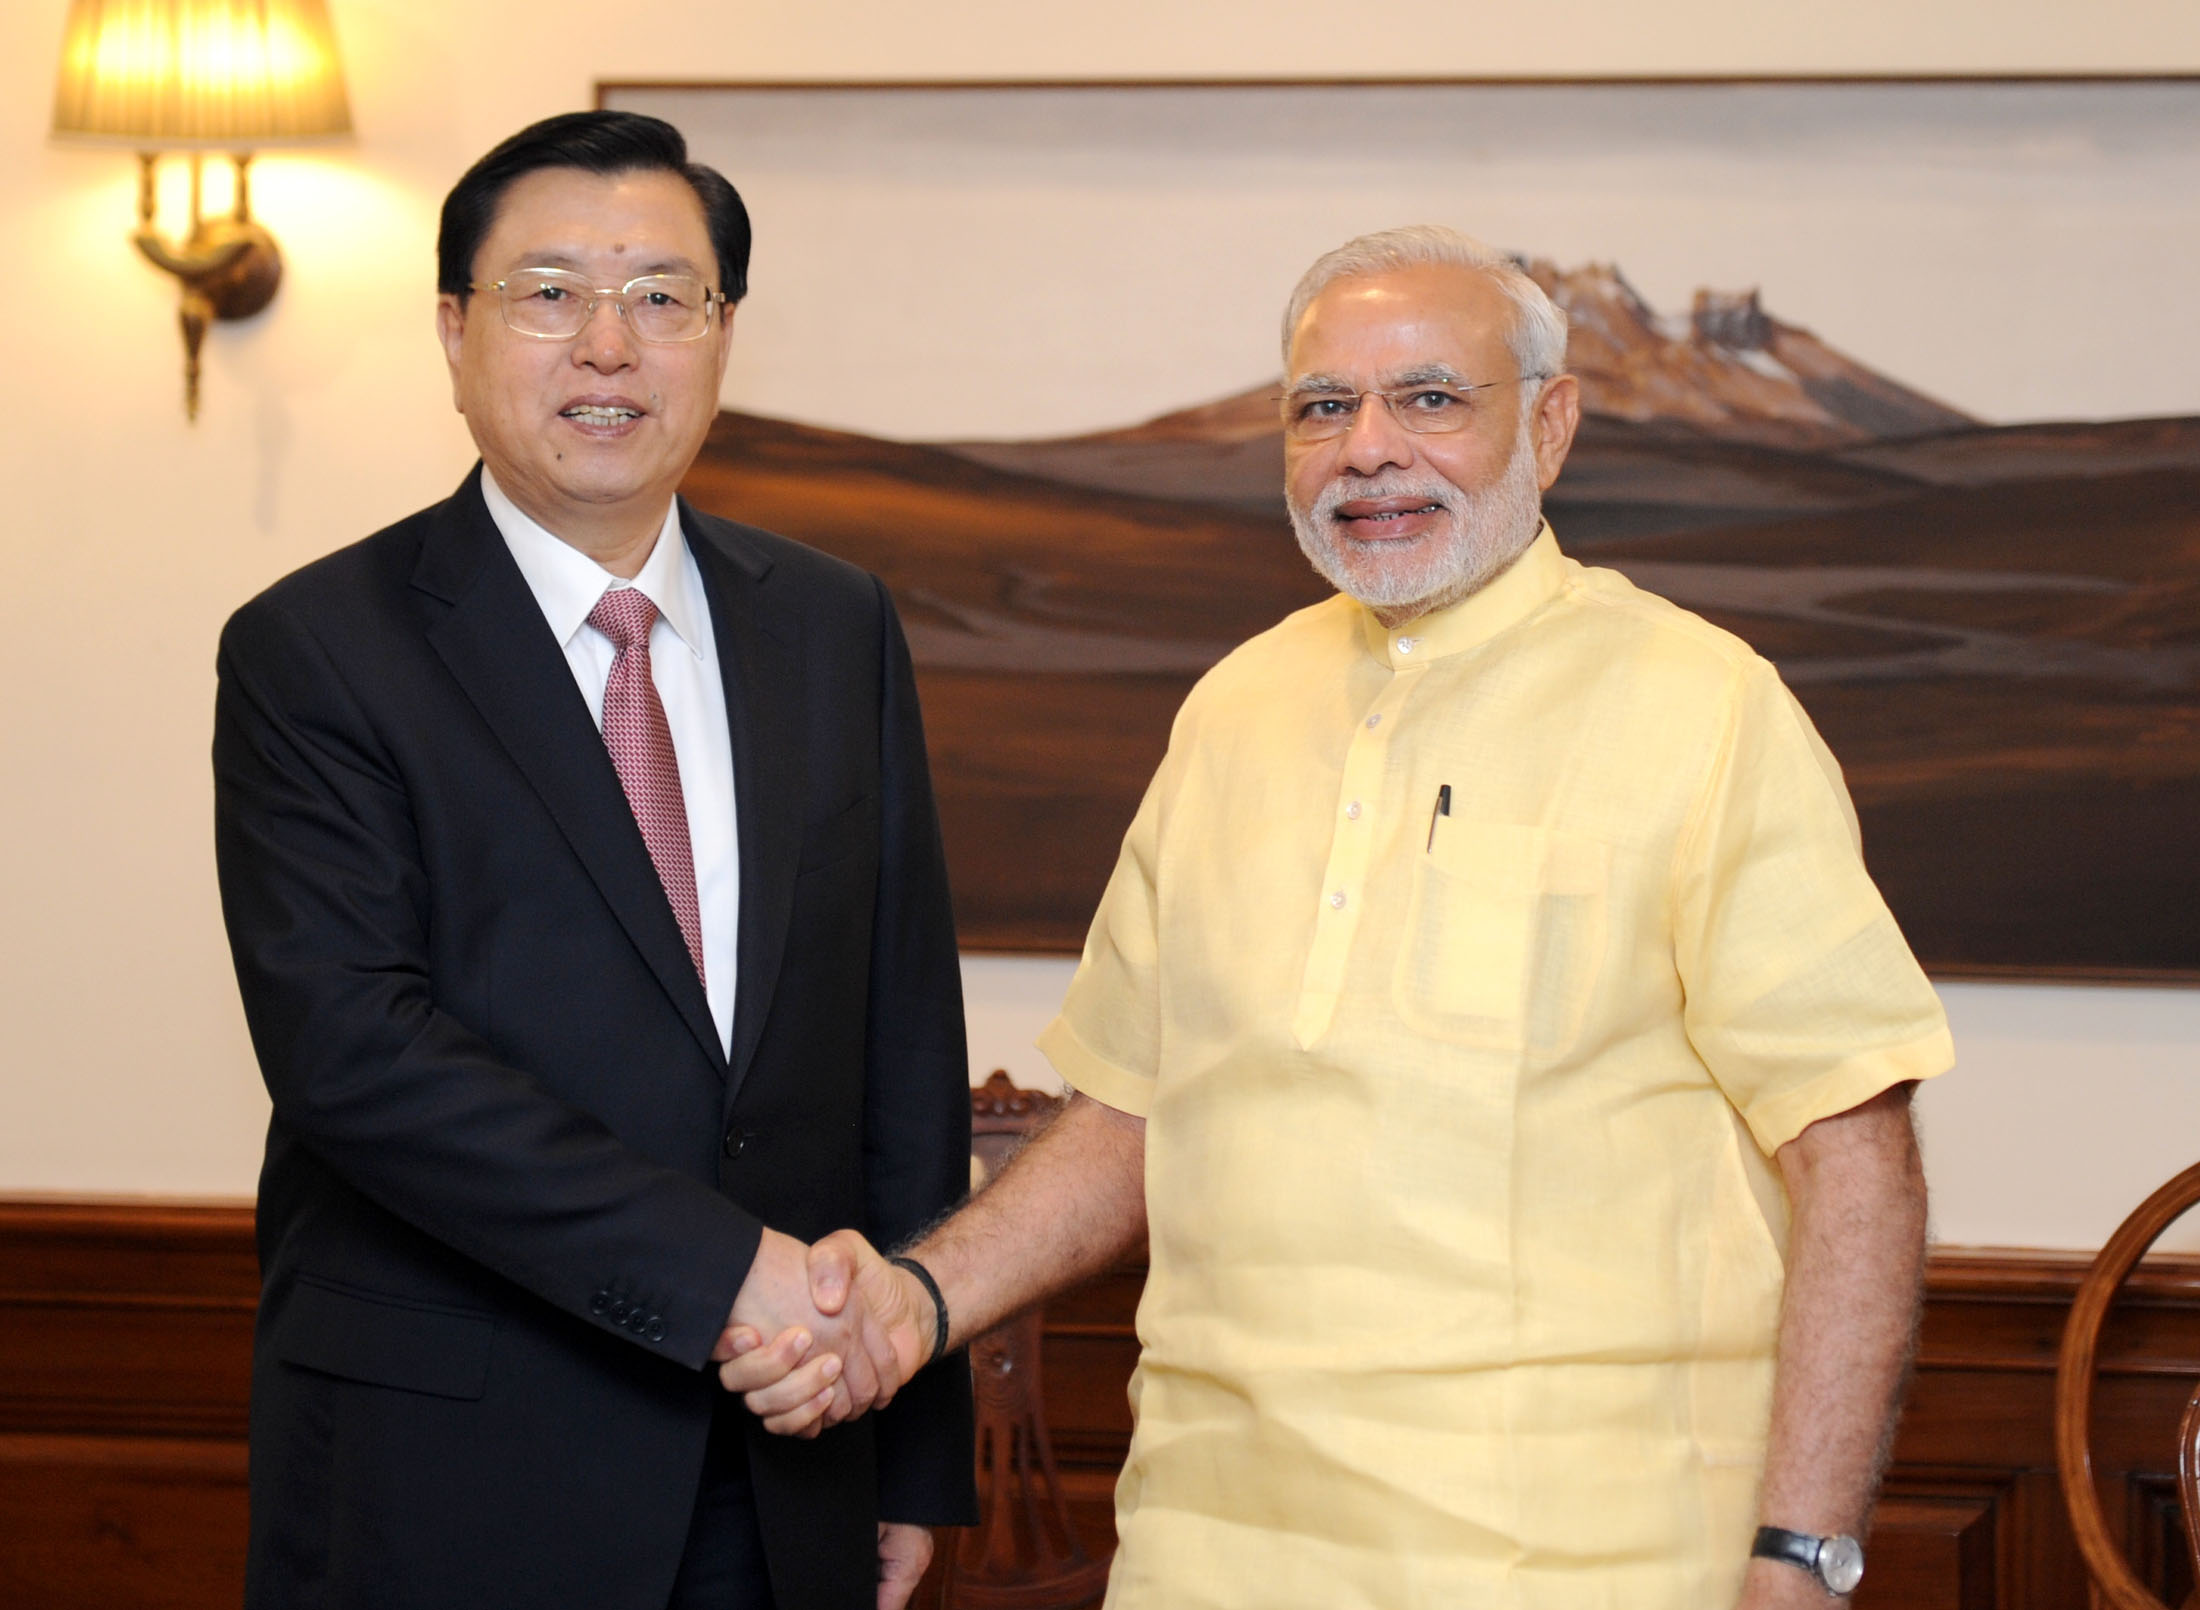 zhang dejiang, chairman of the standing committee of the national people's congress of china, calls on prime minister narendra modi.jpg